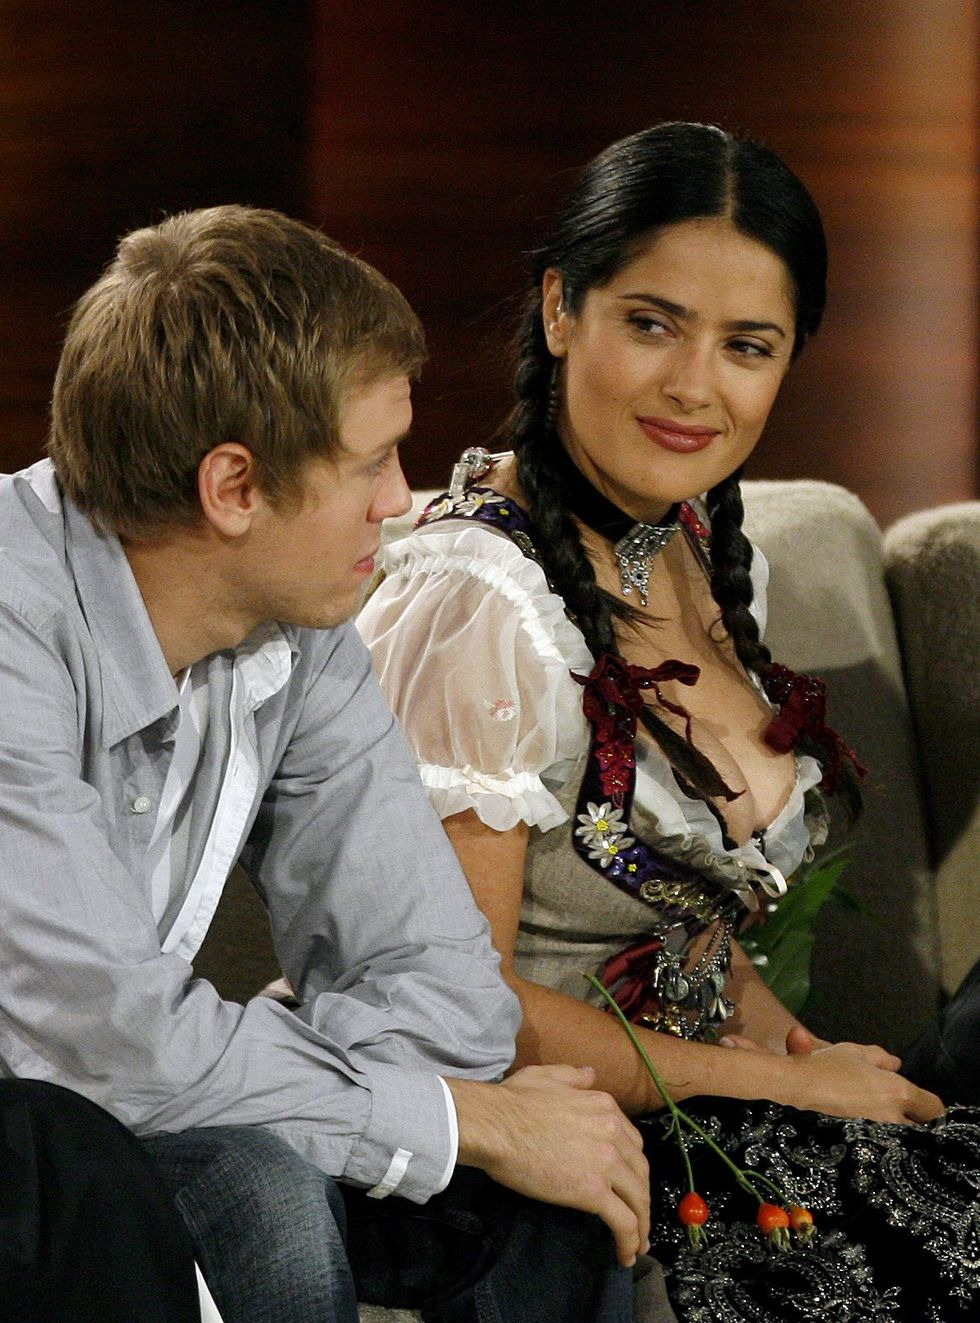 salma-hayek-shows-cleavage-at-wetten-dass-show-in-germany-01